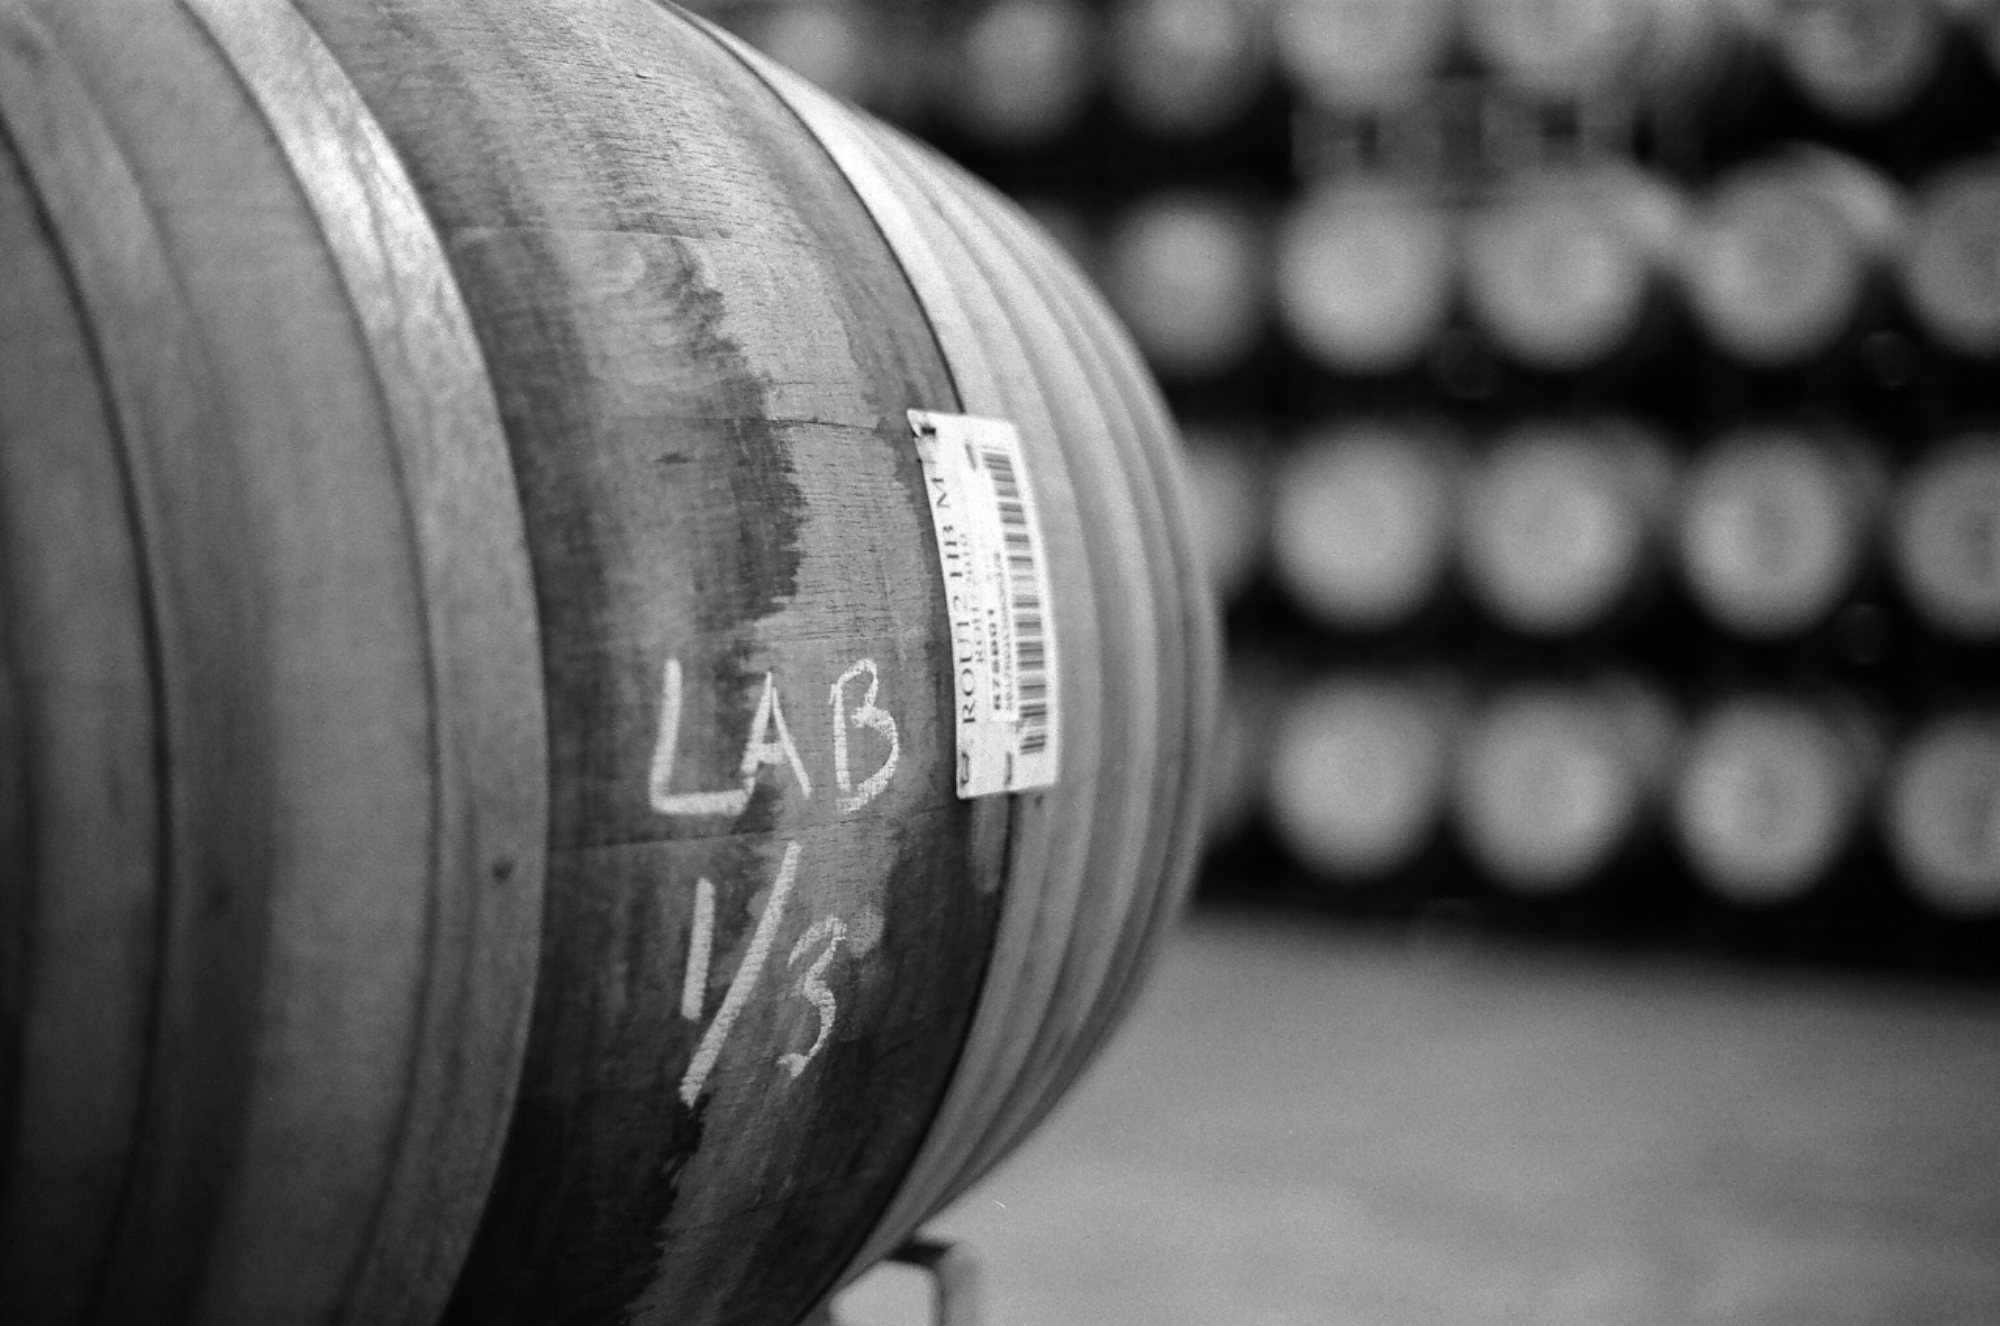 Certain barrels are labeled for lab testing